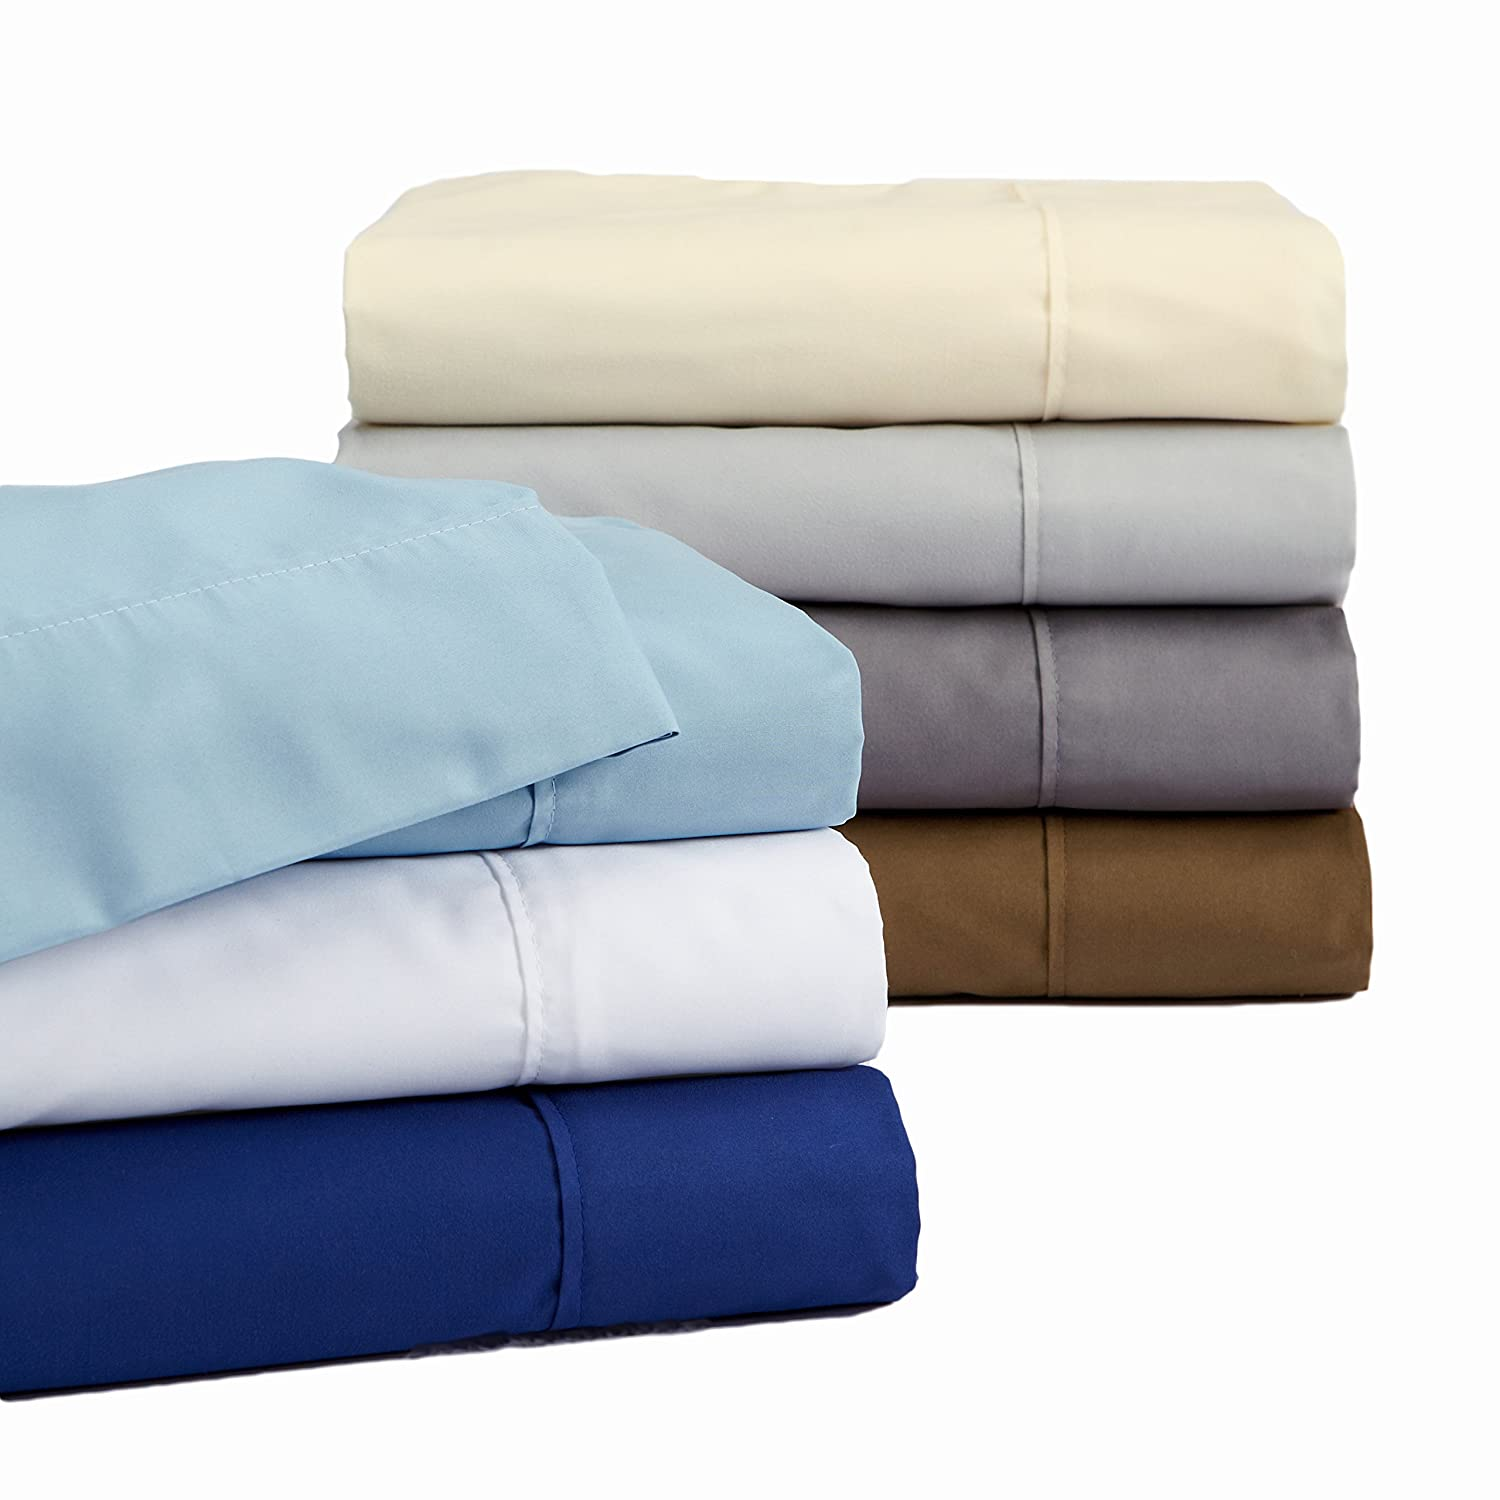 Claudette Collection Egyptian Quality Double Brushed Microfiber Sheet Set